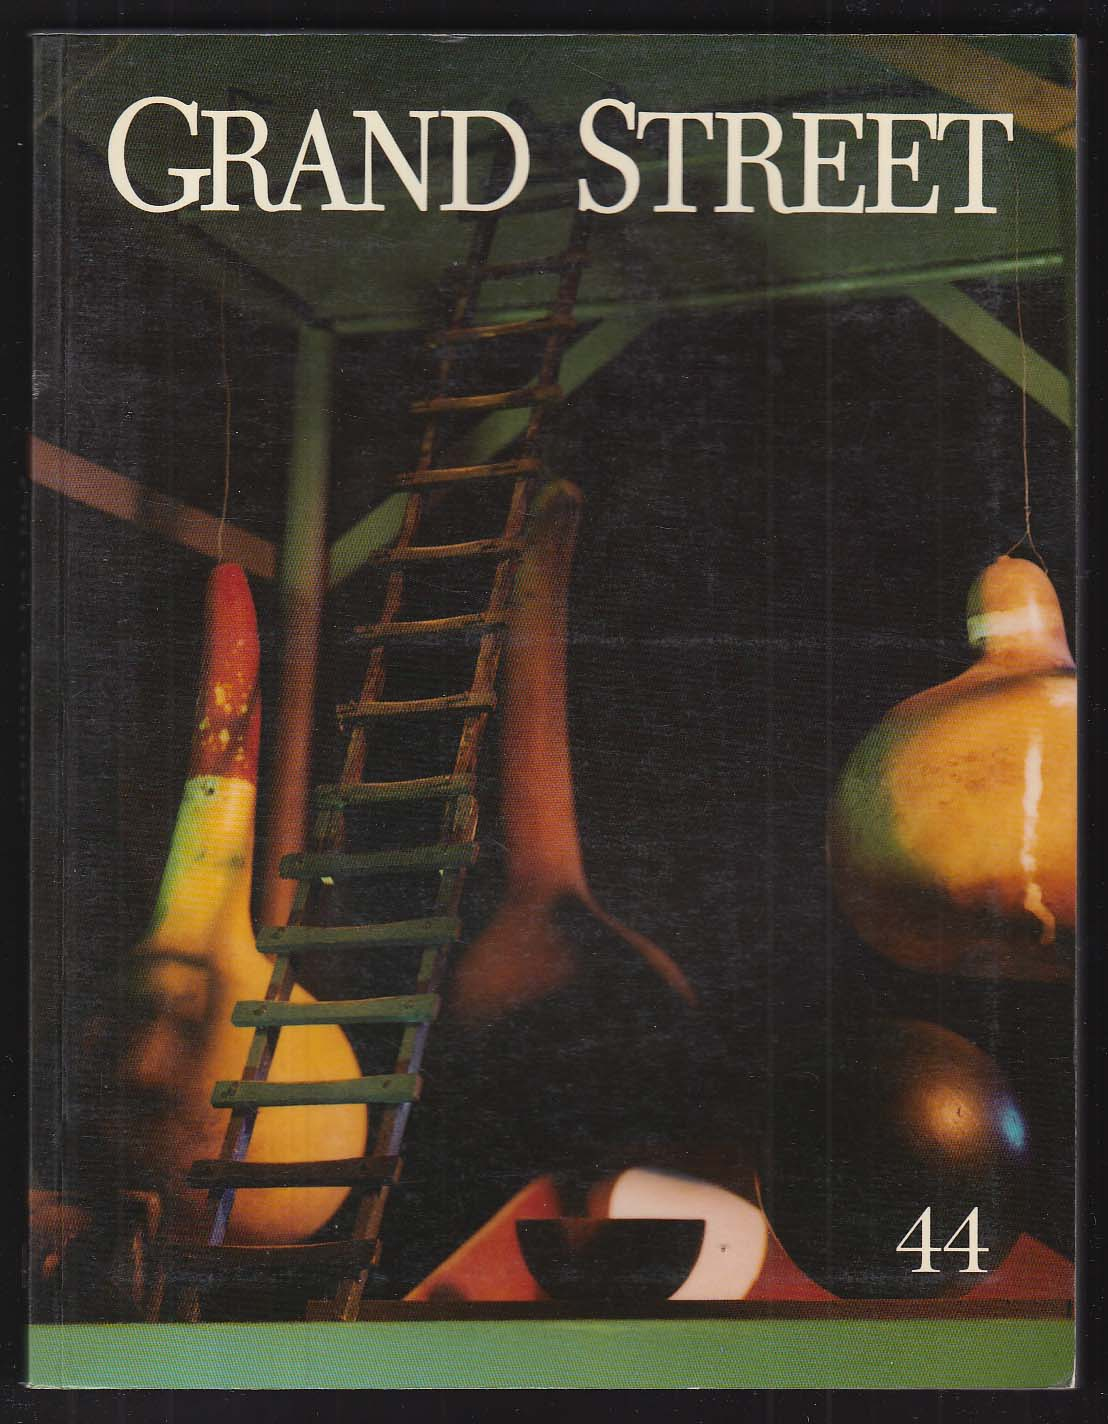 GRAND STREET #44 Edmund White Fred Wilson Sharon Olds Andrew McCord + 1993